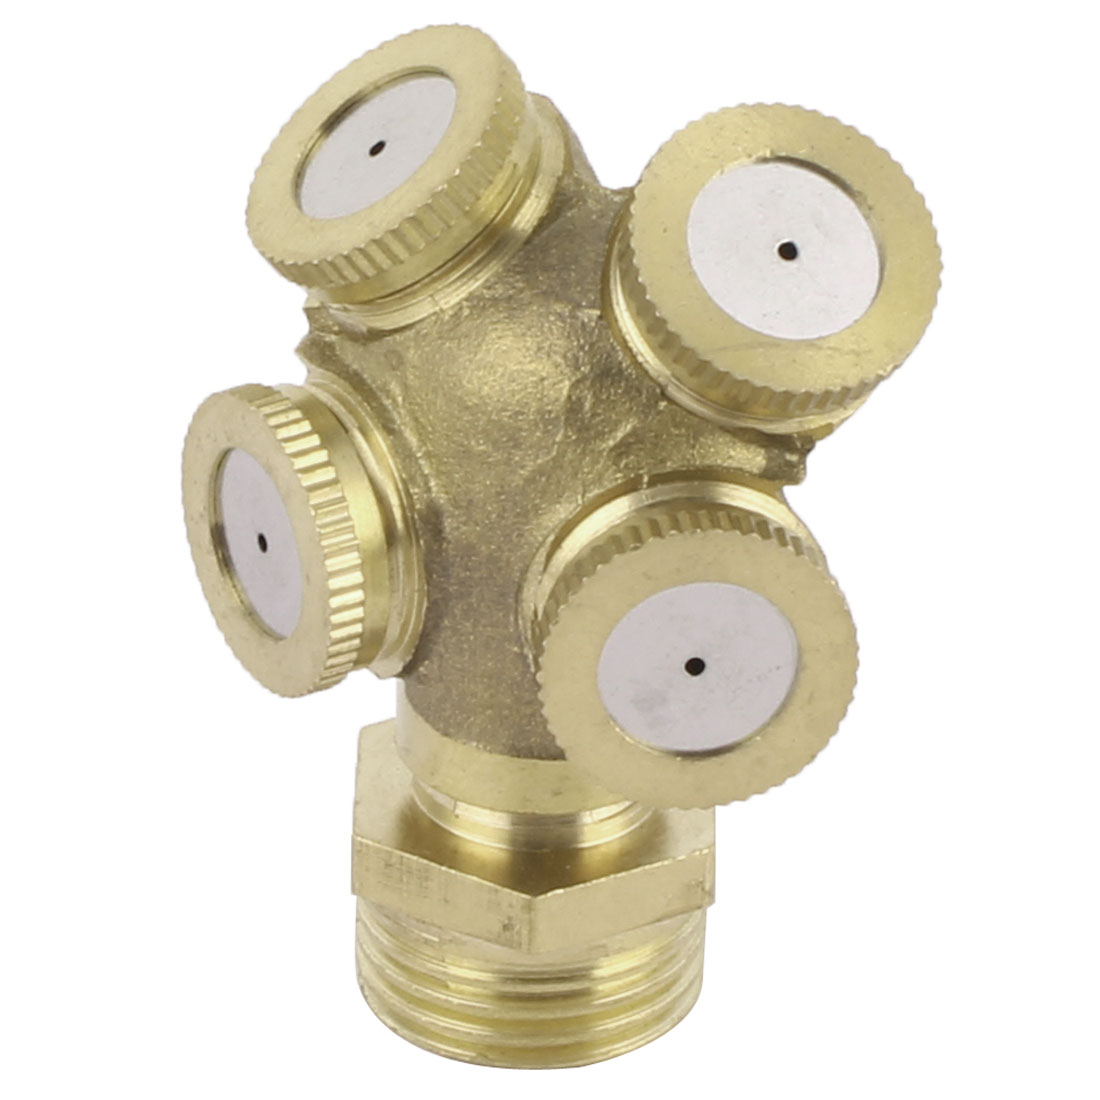 Garden Brass Irrigation 4 Water Outlet Holes Spray Nozzle 20mm Male Thread Dia